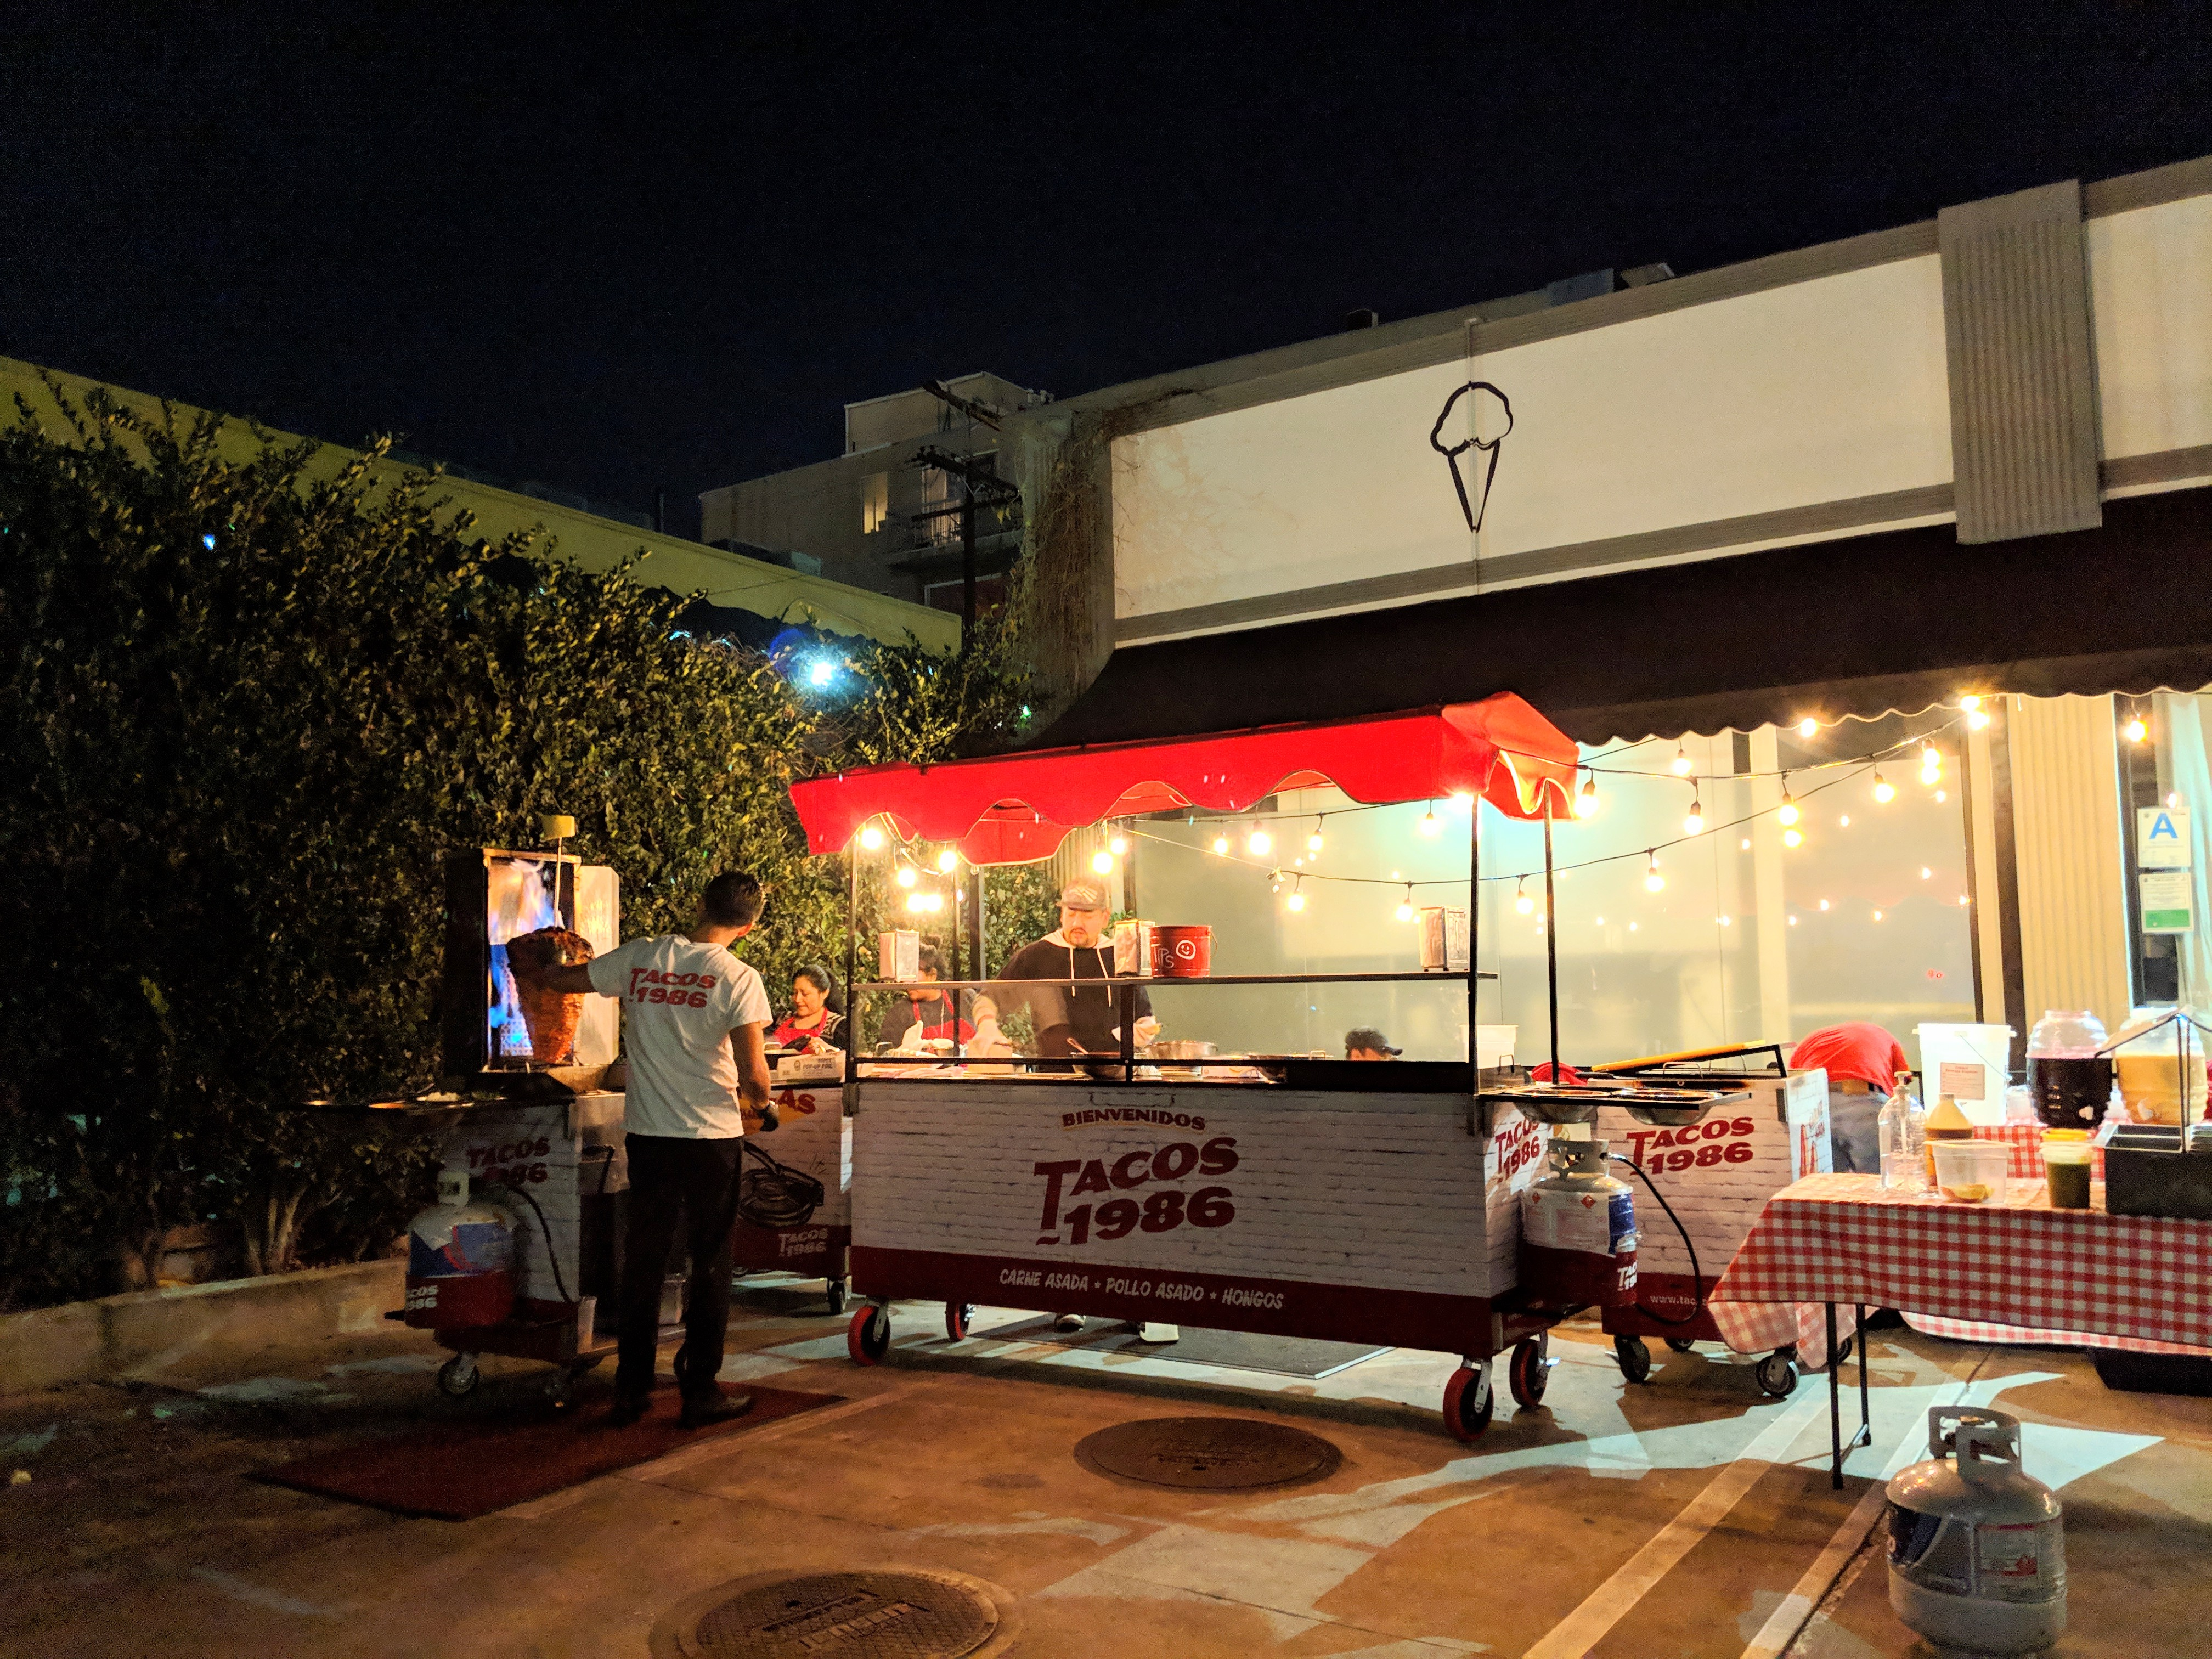 LA Street Food Hit Tacos 1986 Faces Uncertain Future After Loss of Location